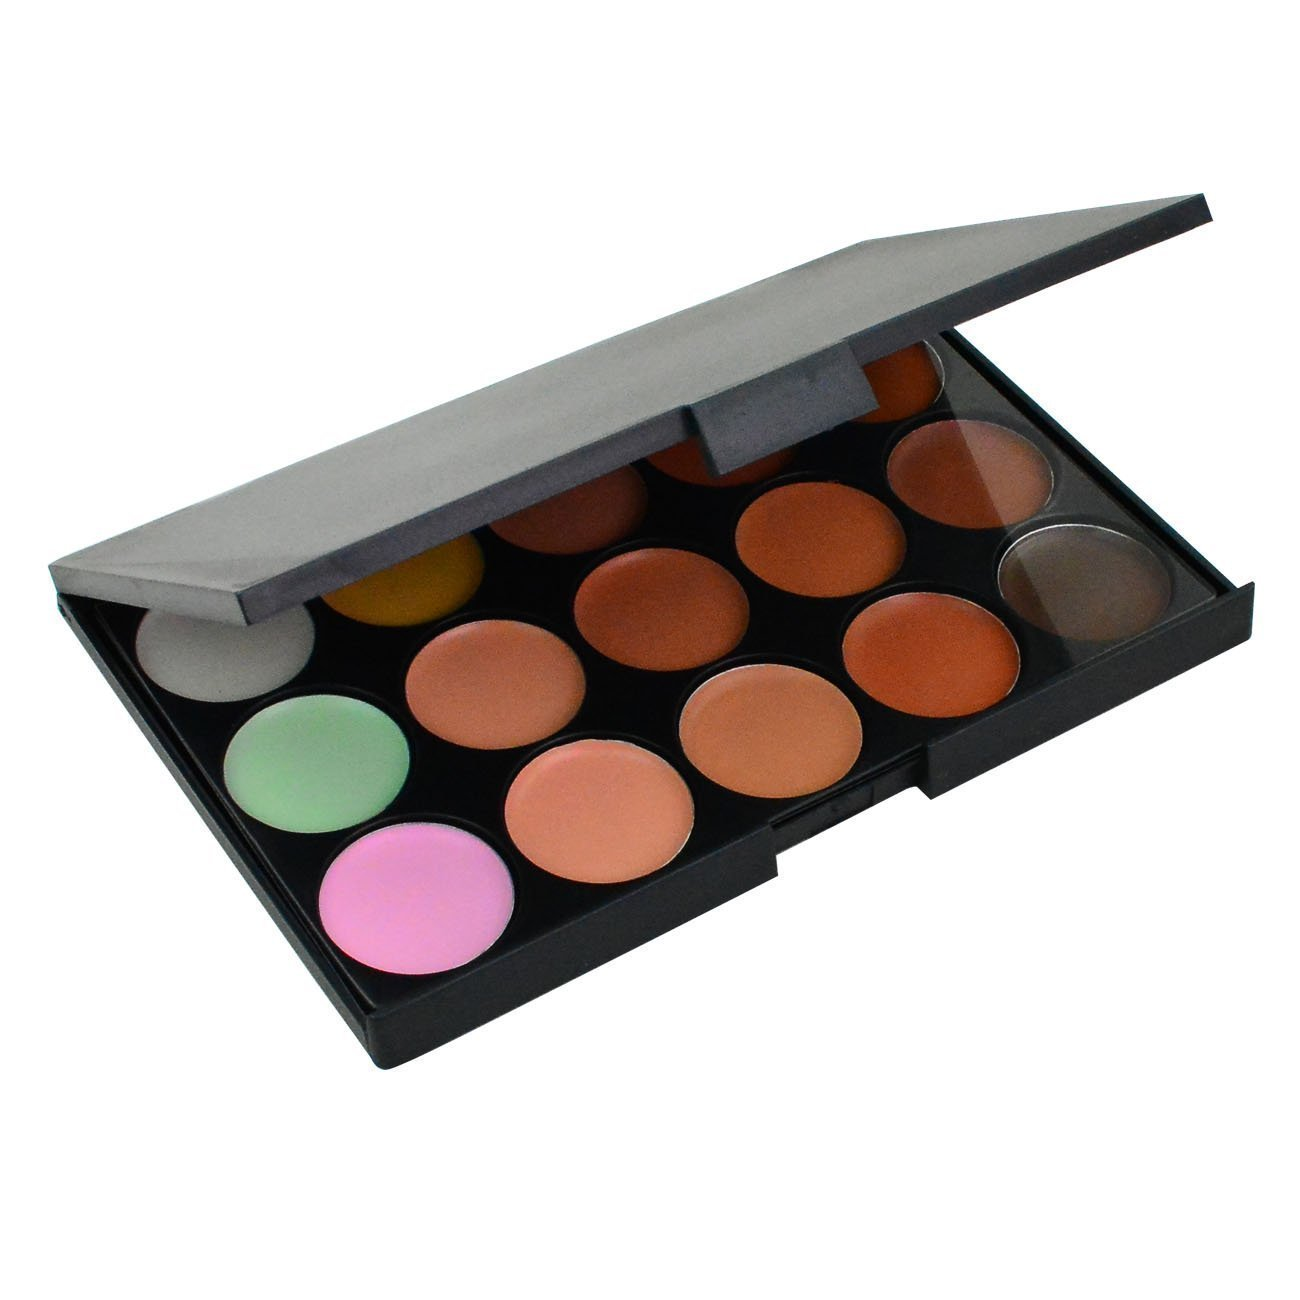 15 Color Concealer Makeup Palette Professional Camouflage Palette by HOVEOX by HOVEOX (Image #4)